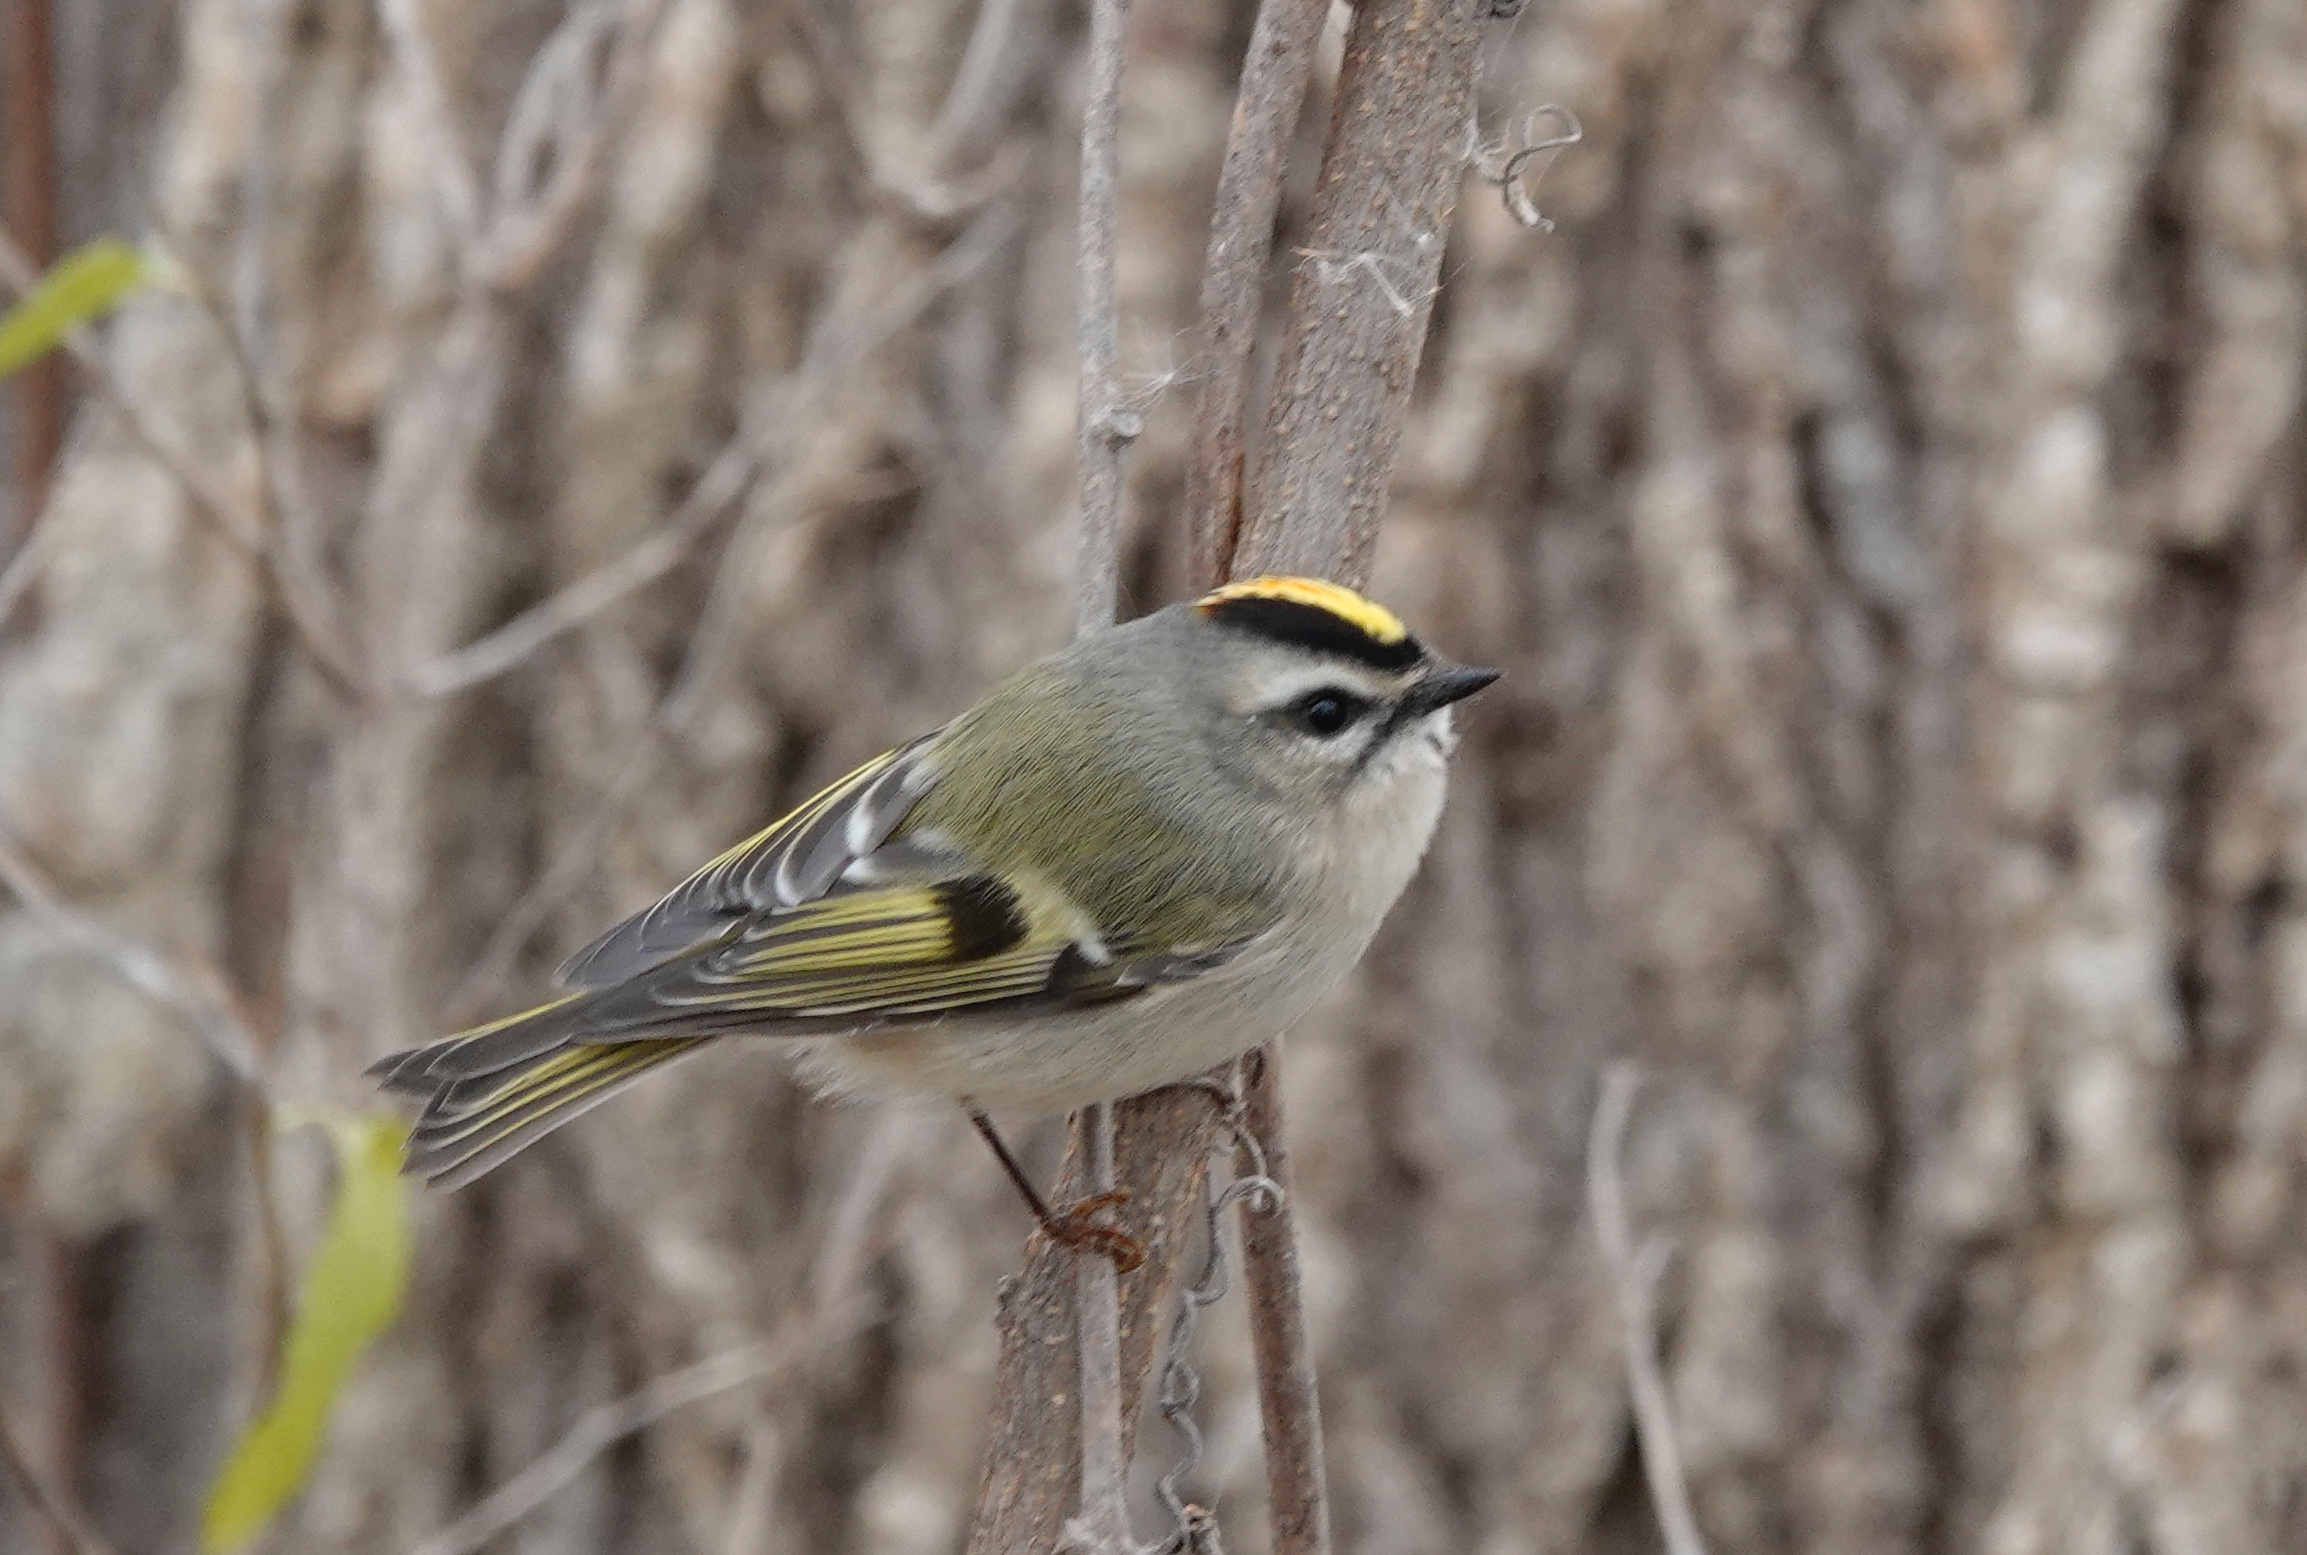 Golden-crowned kinglets are capable of wintering in areas where nighttime temperatures fall below –40° Fahrenheit.